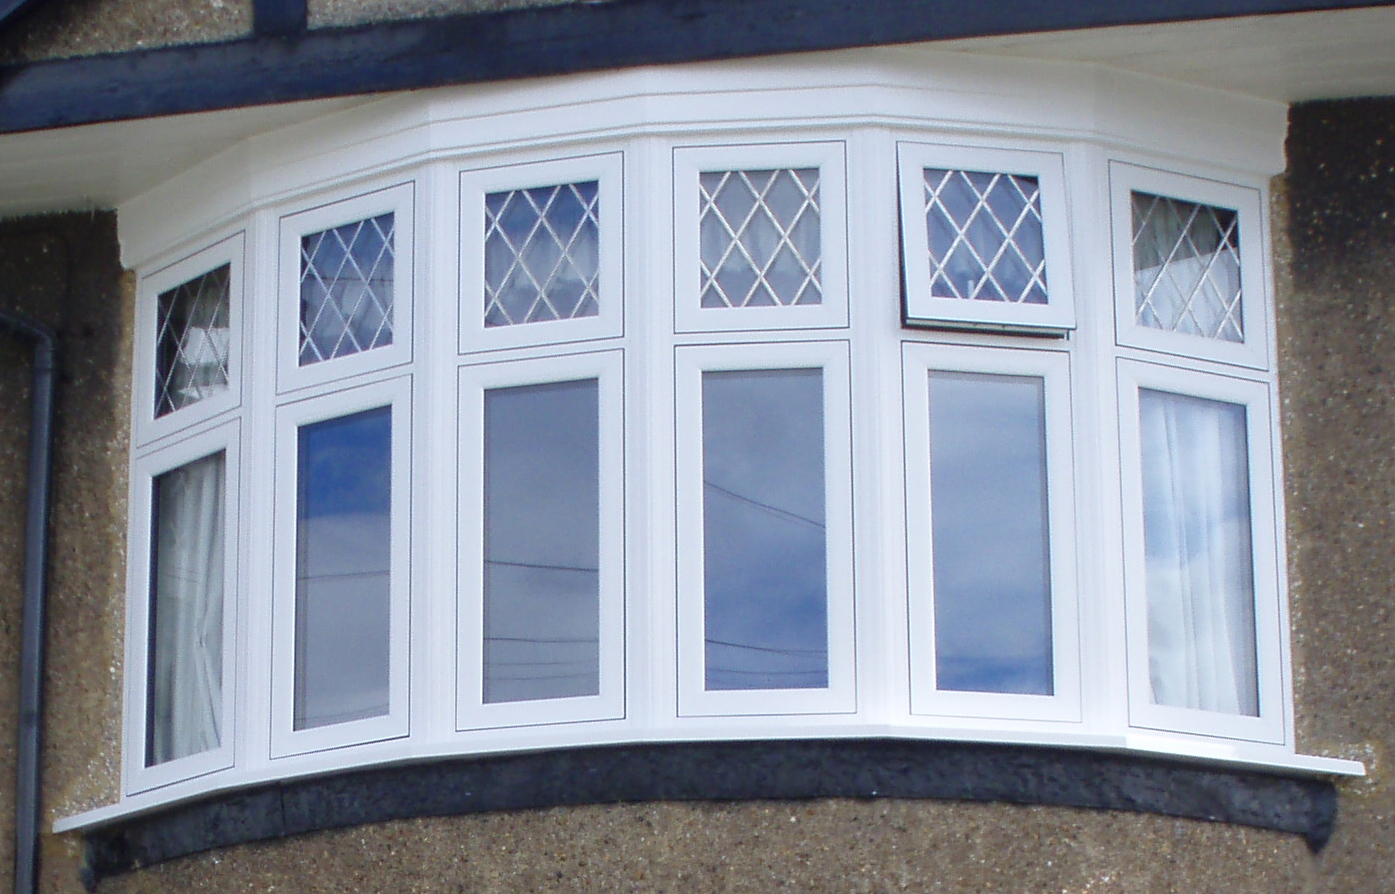 Flush Fit Windows : Flushsash windows whiteline manufacturing ltd